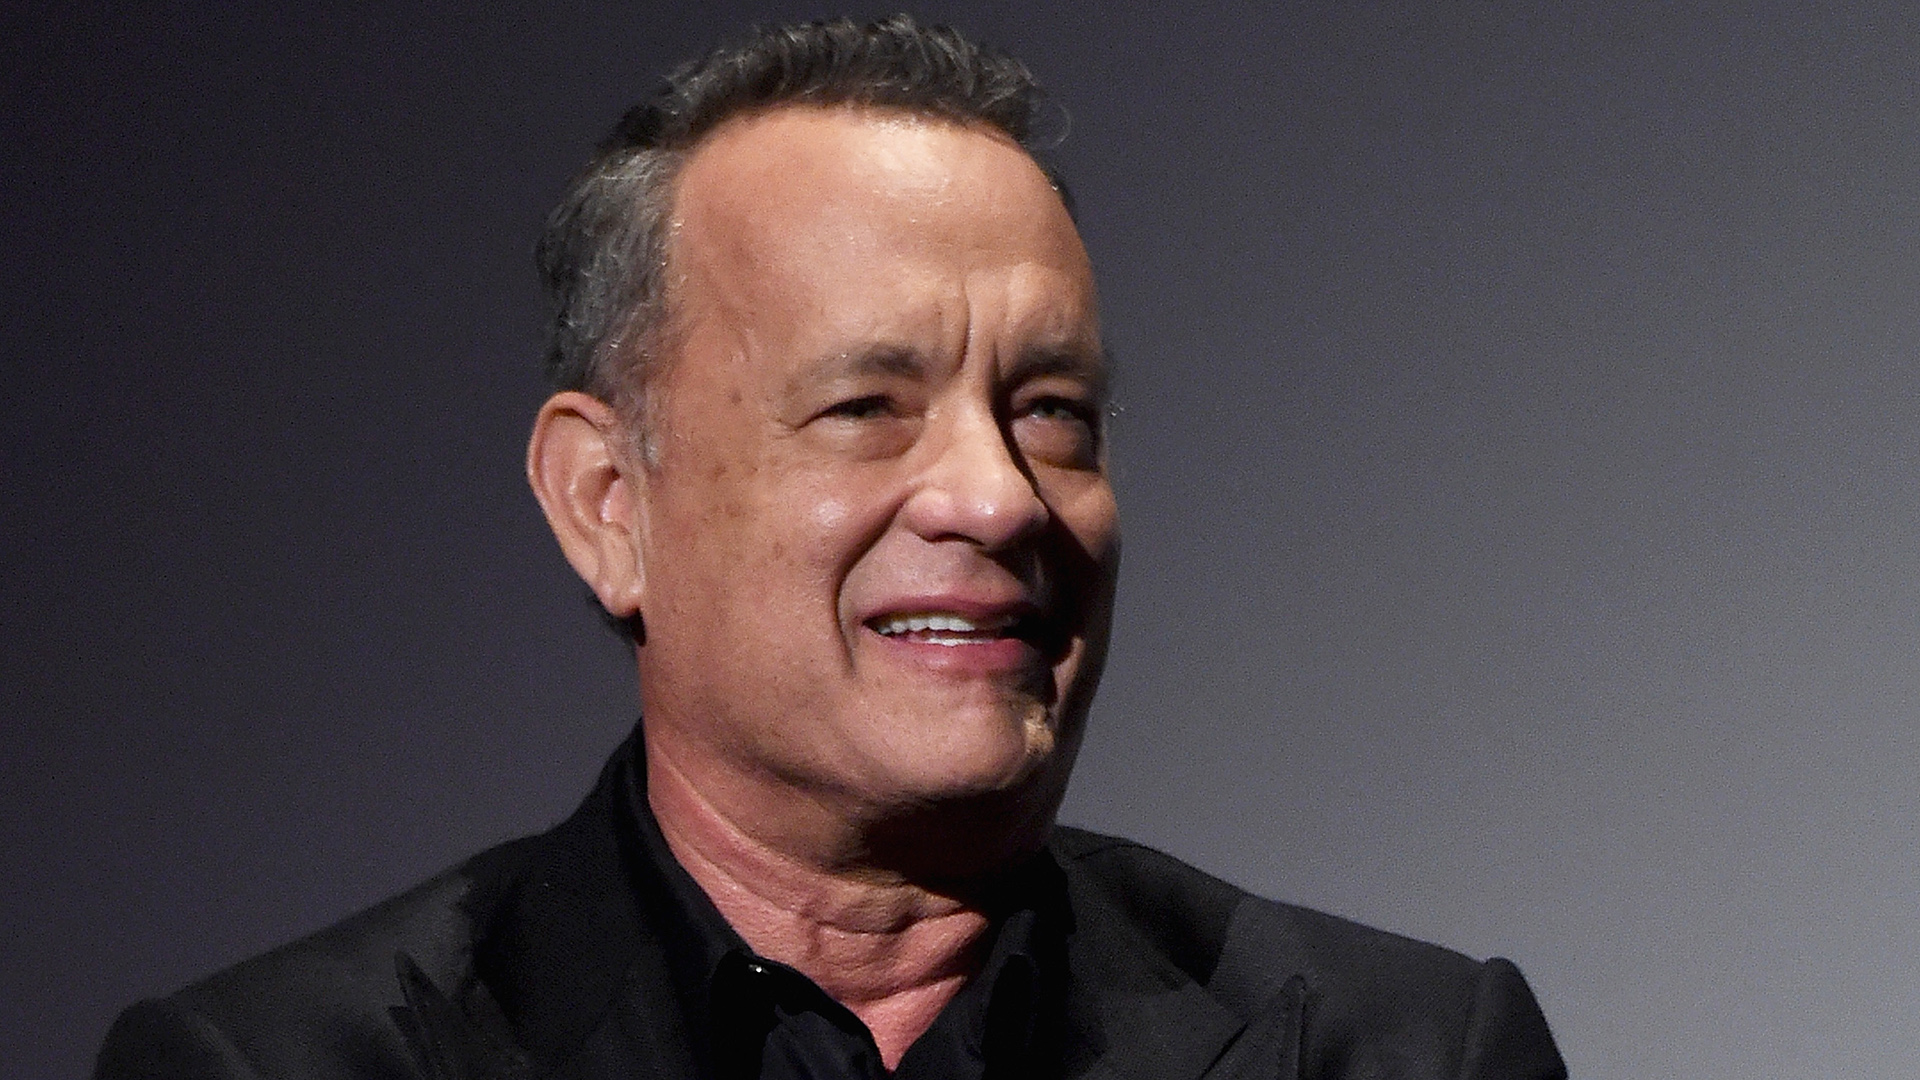 tom hanks on what led to type 2 diabetes diagnosis i was a total